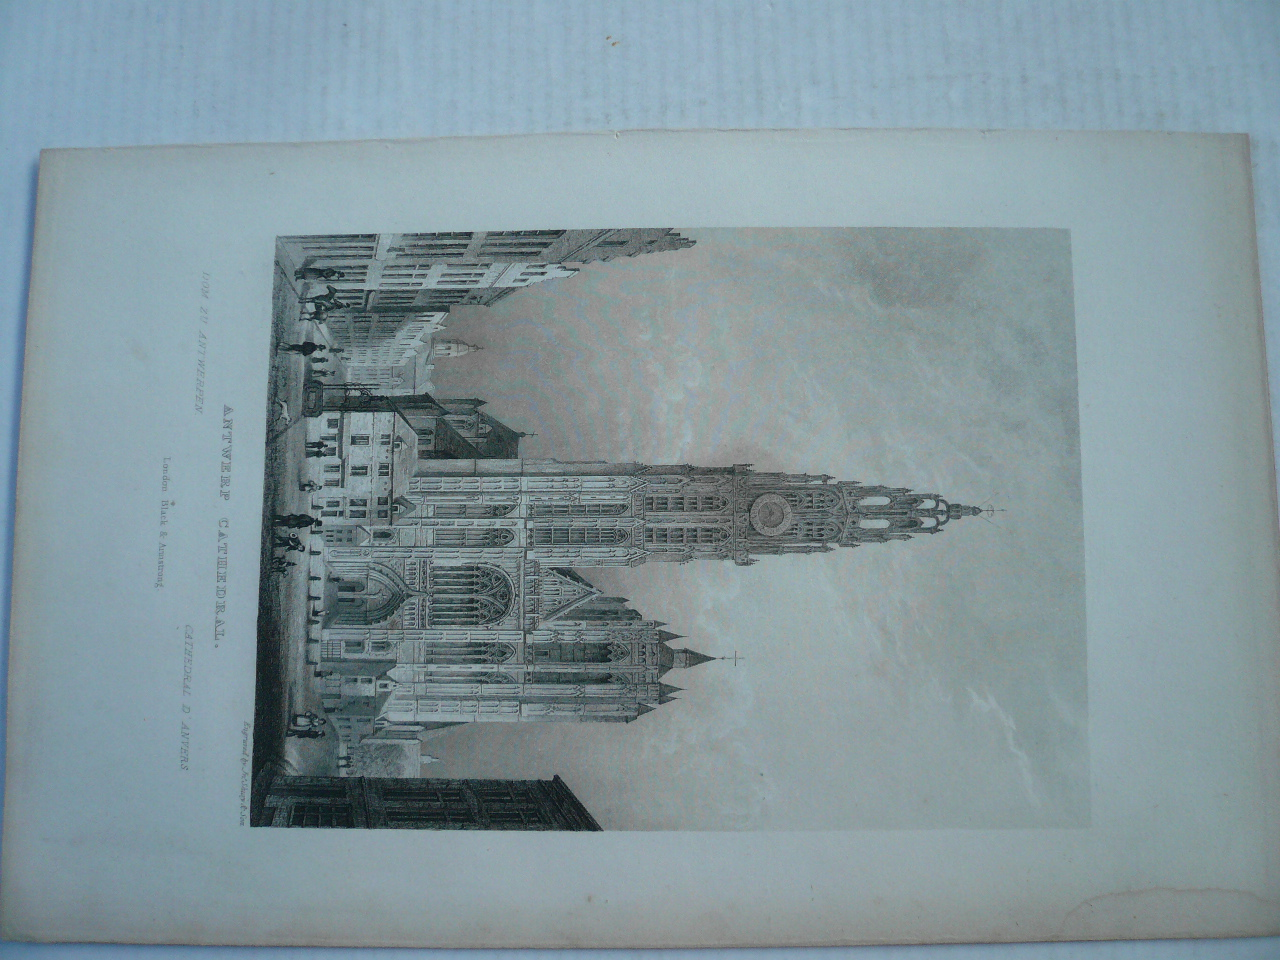 Antwerp, cathedral, anno 1840, steelengraving, Black & Armstrong